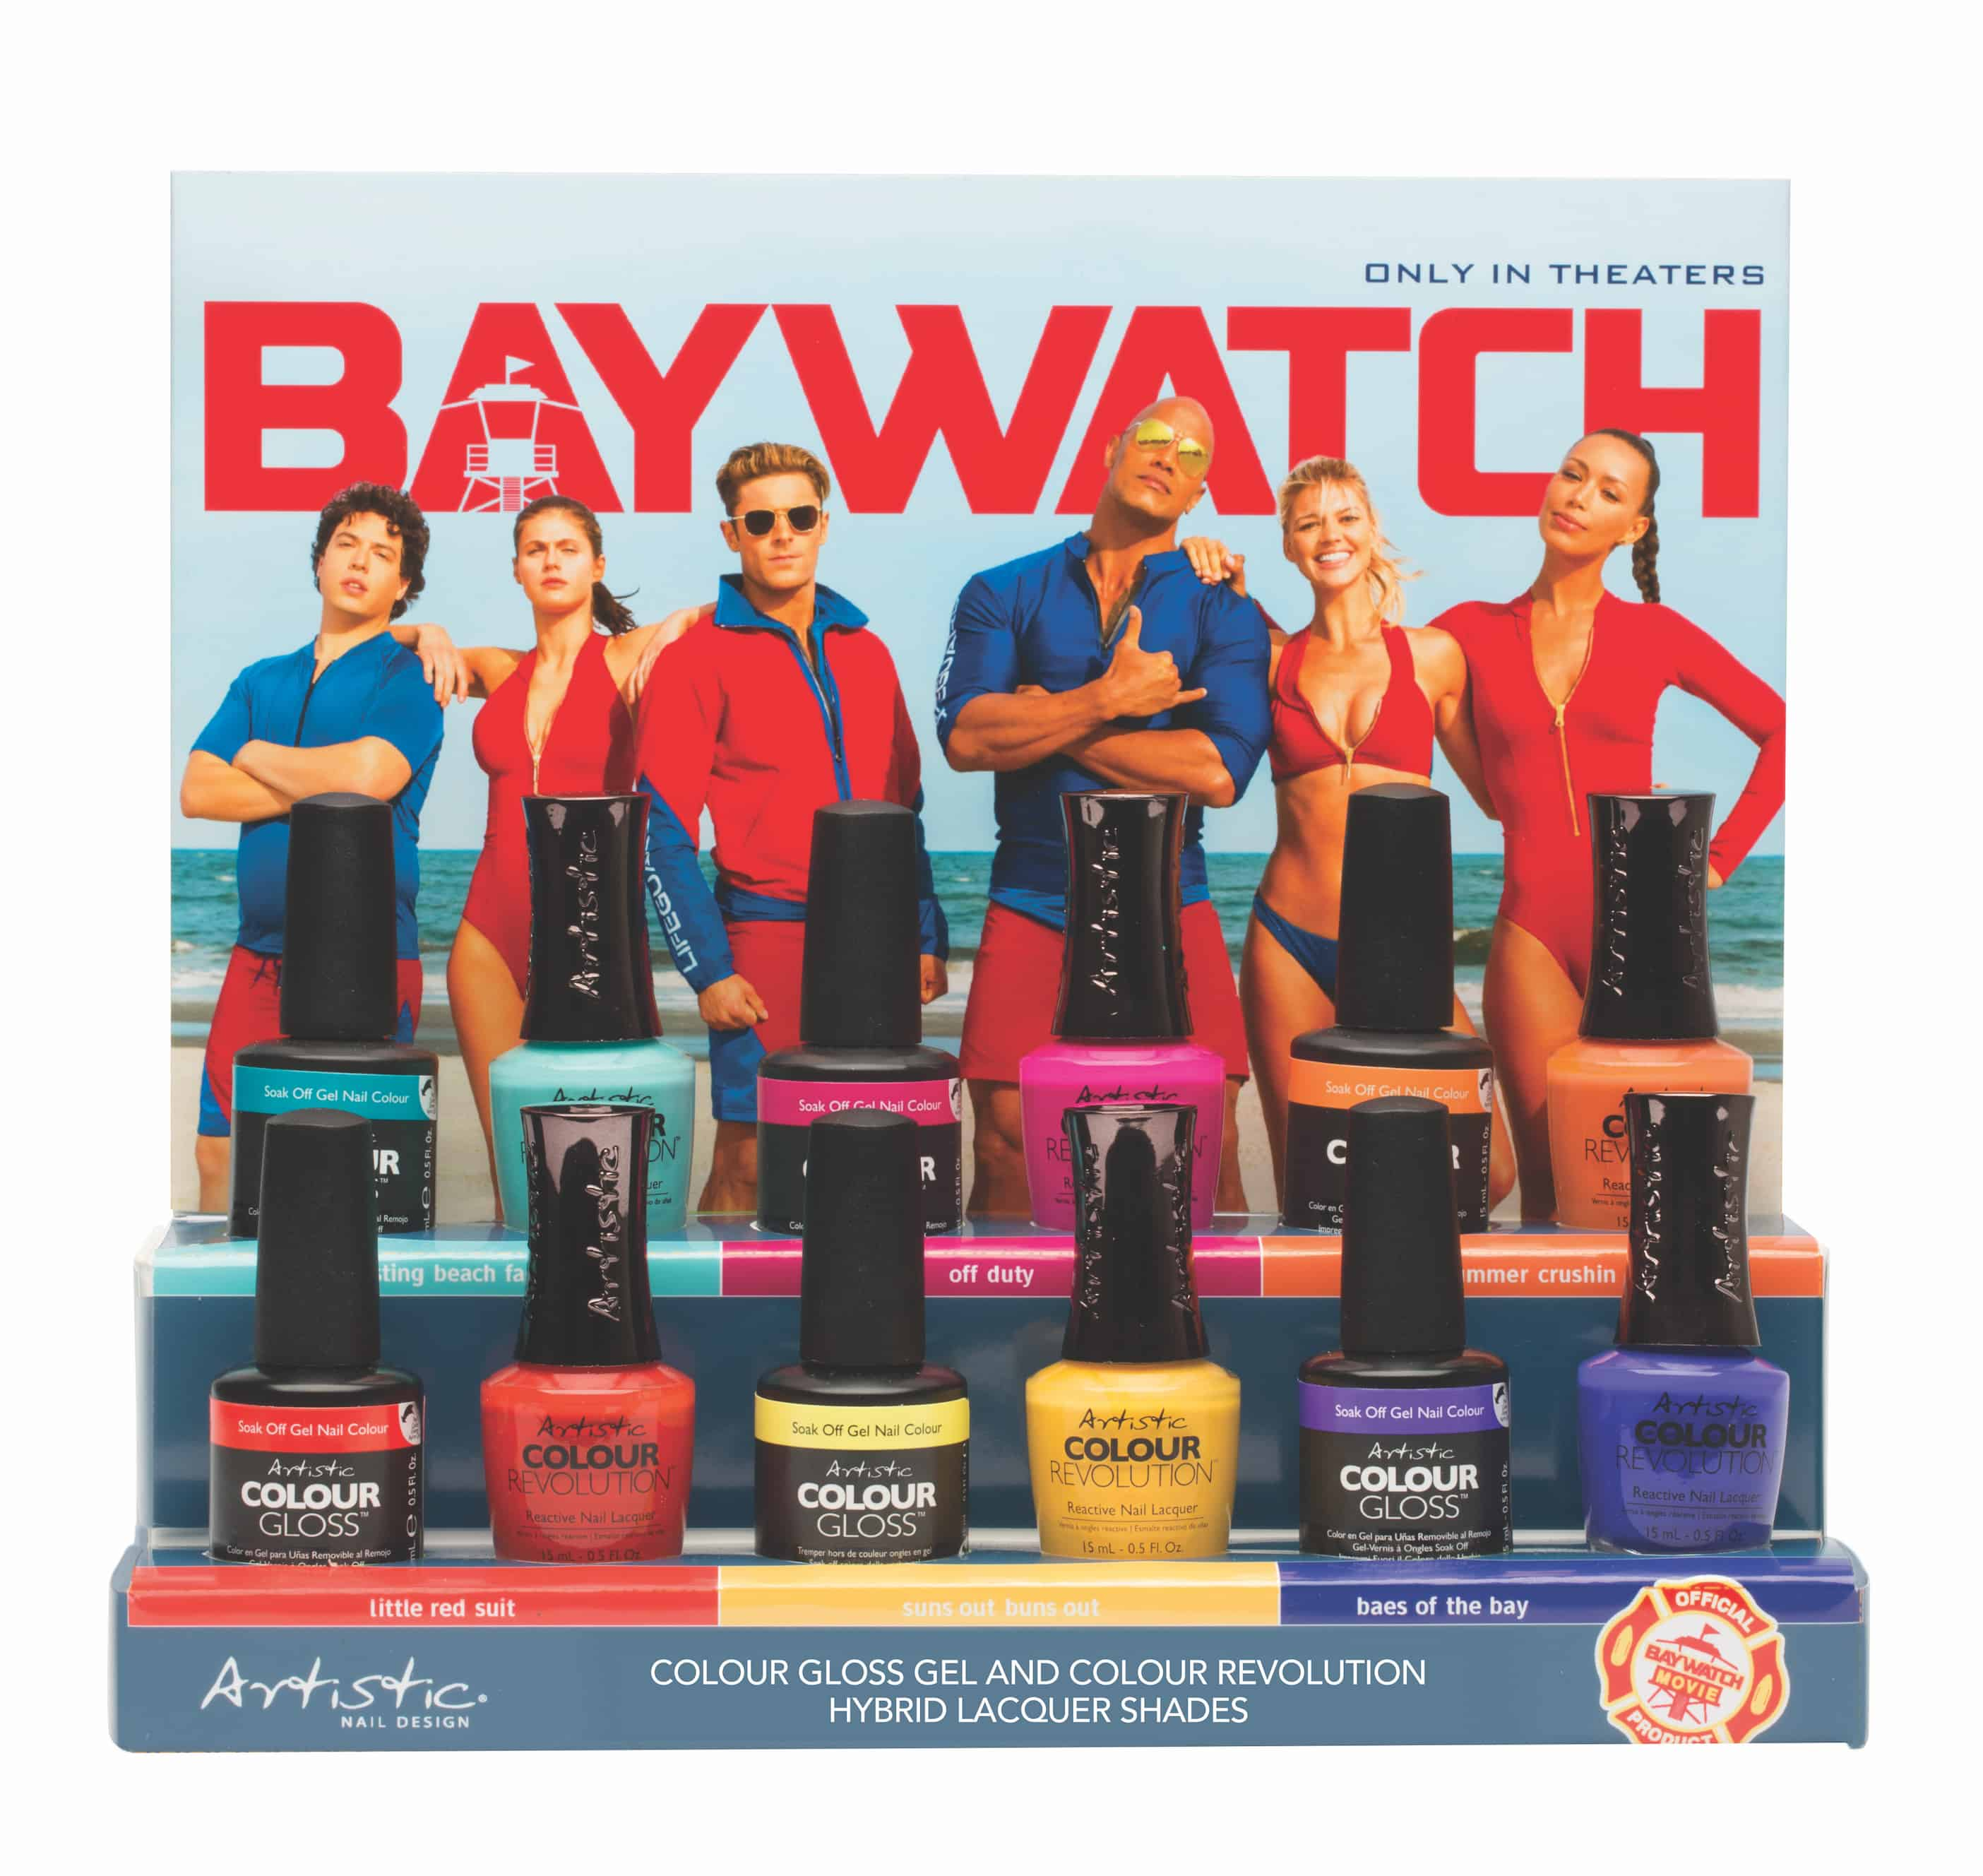 smalti Baywatch